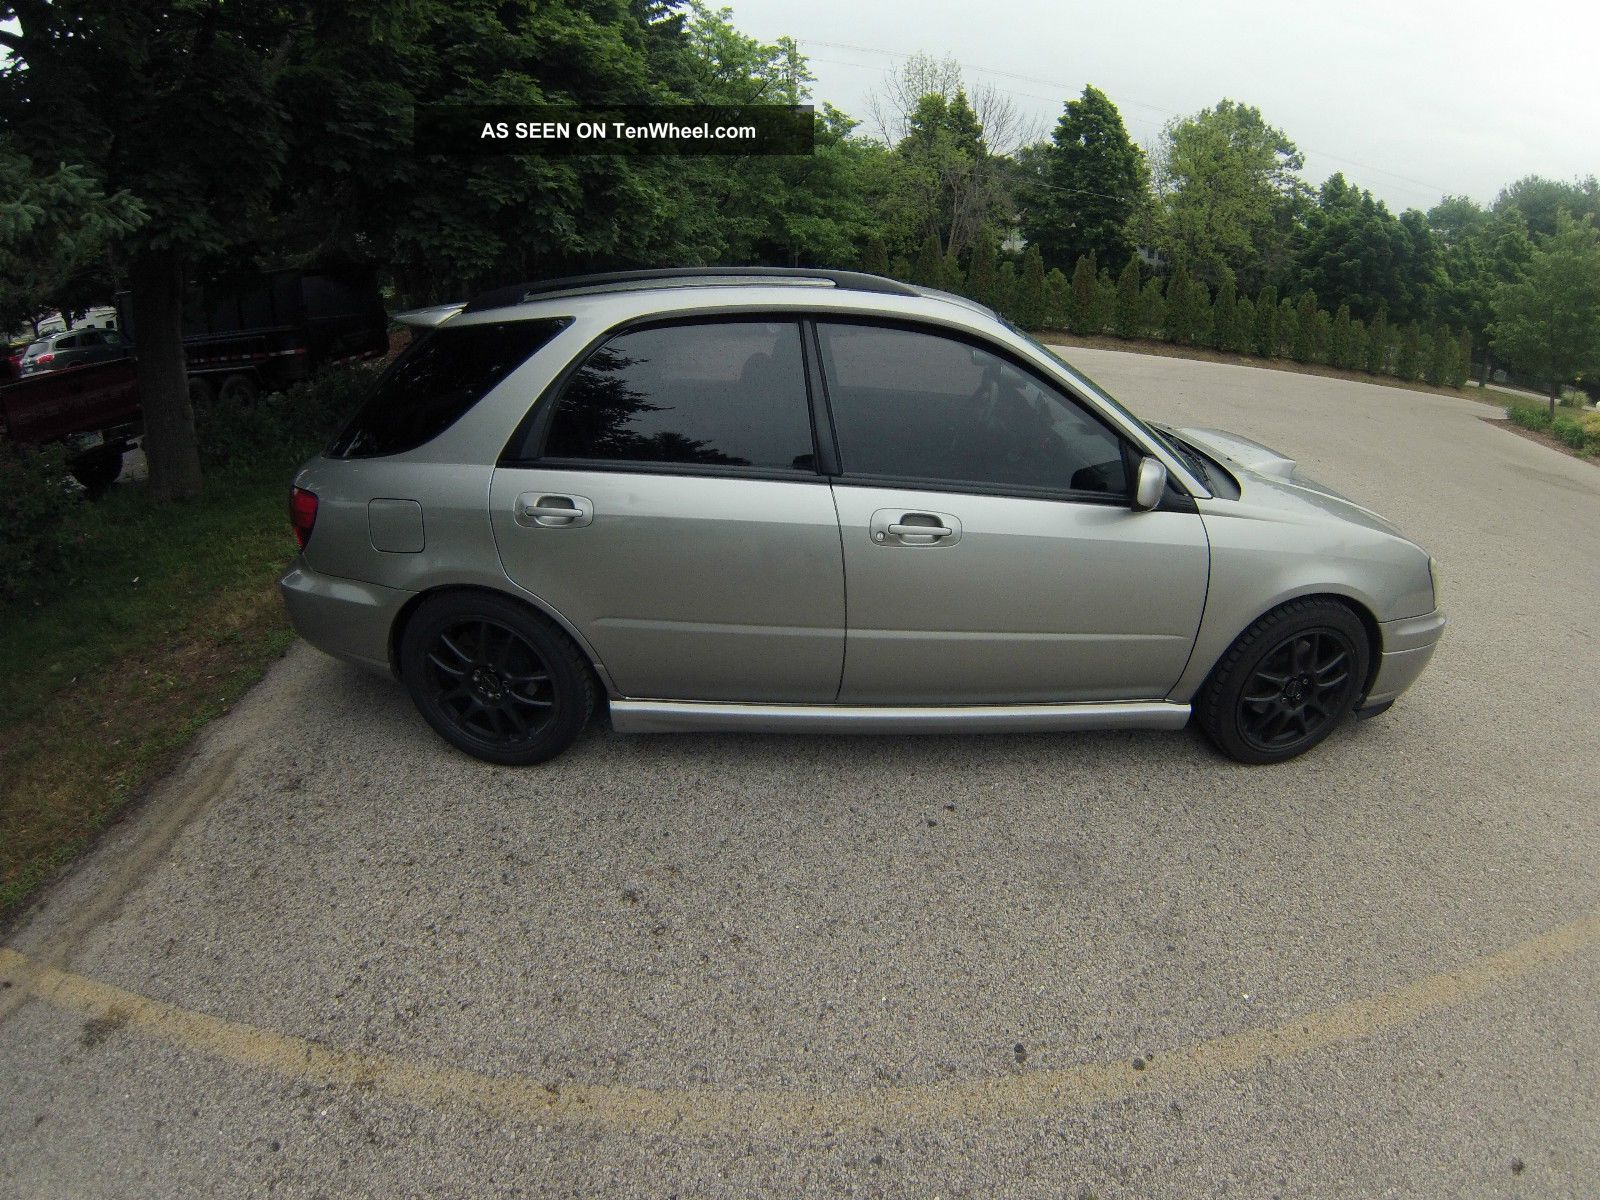 2005 subaru impreza wrx wagon 4 door 2 0l. Black Bedroom Furniture Sets. Home Design Ideas